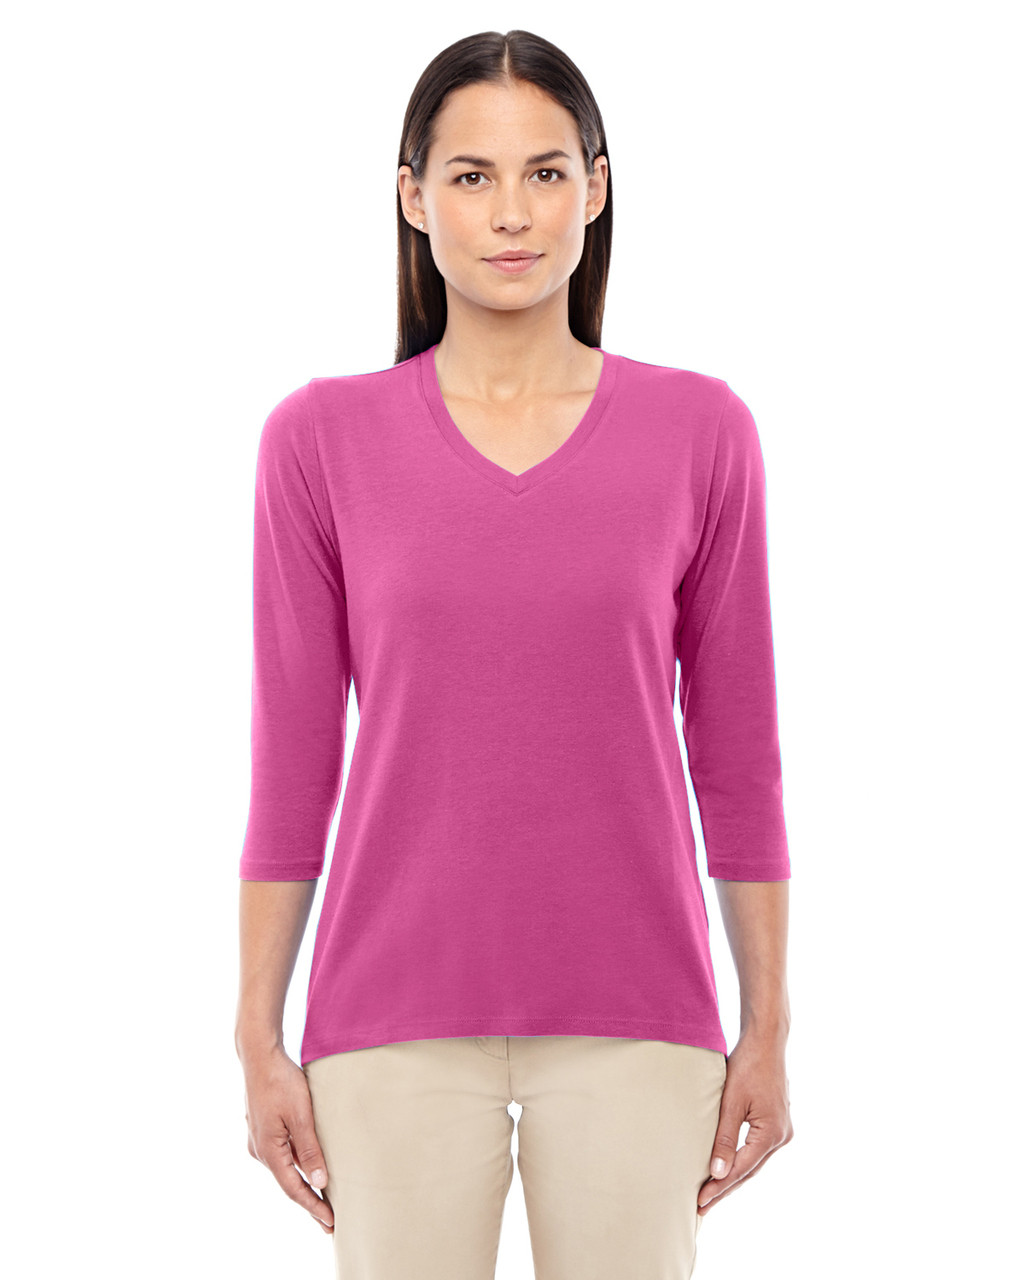 Charity Pink - DP184W Devon & Jones Ladies' Perfect Fit Bracelet Length V-Neck Top